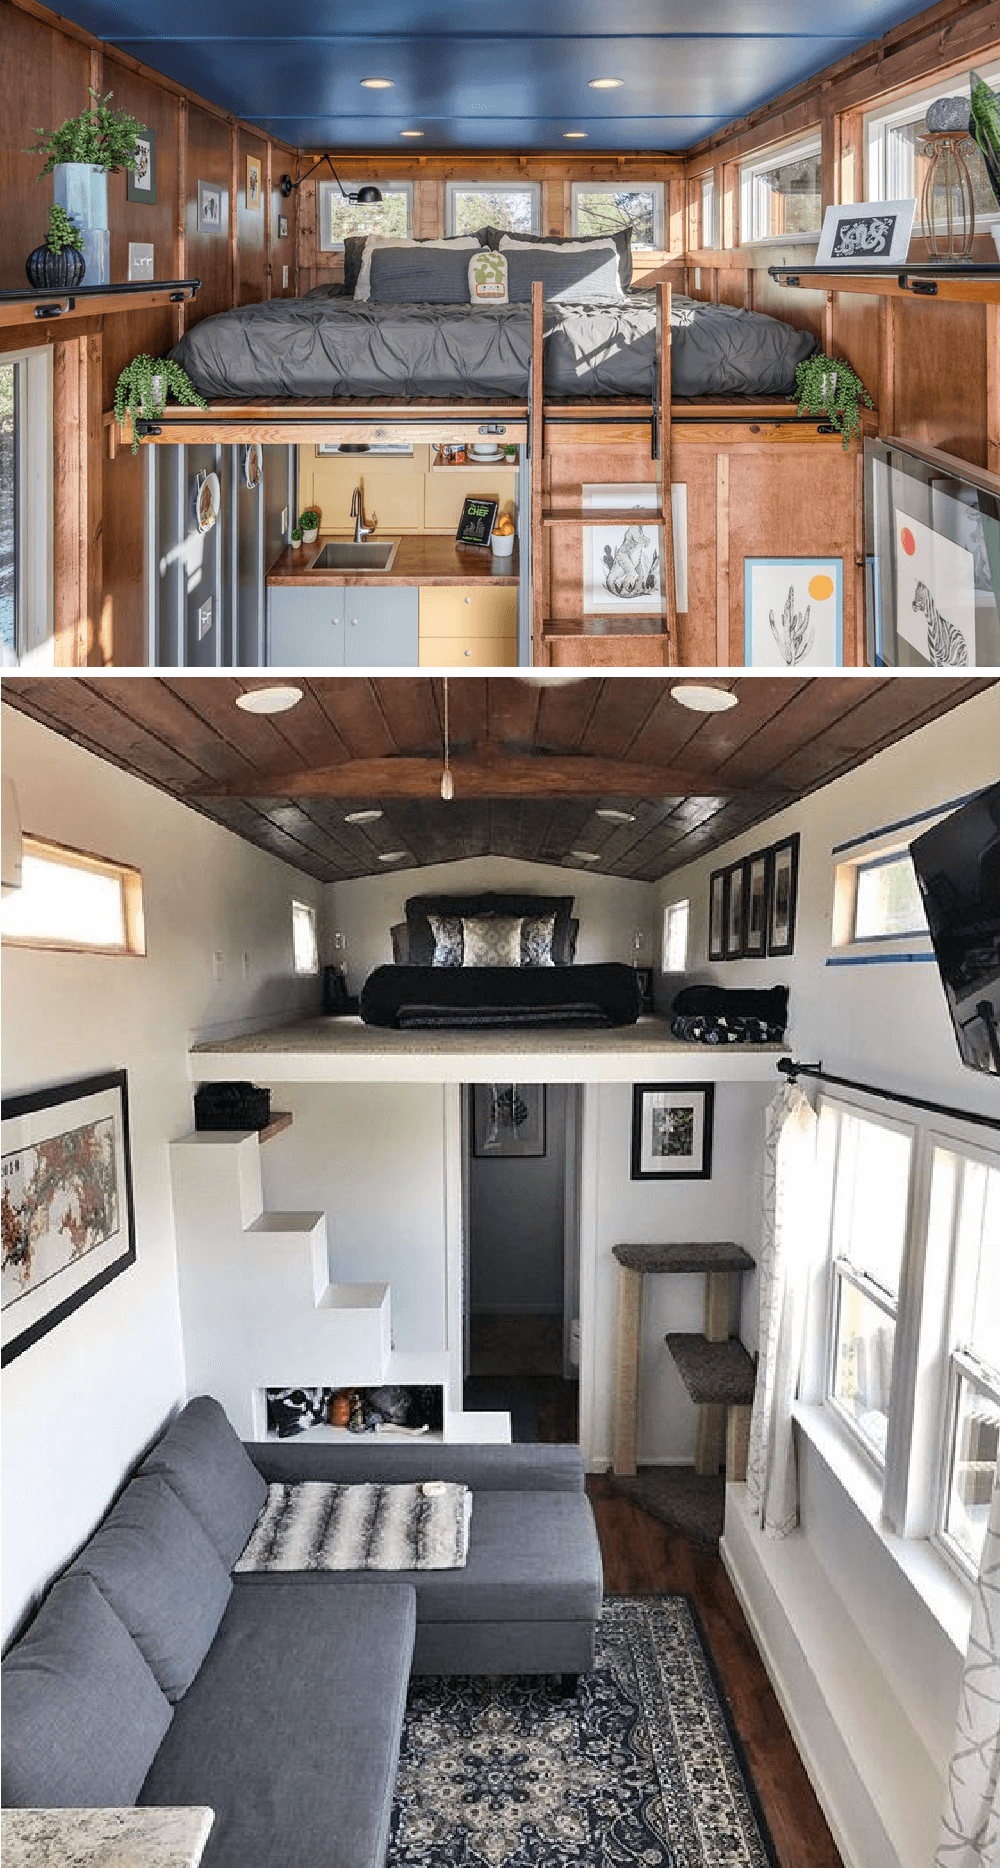 1. CLIMBING UP TINY HOUSE BEDROOM DESIGN IDEAS